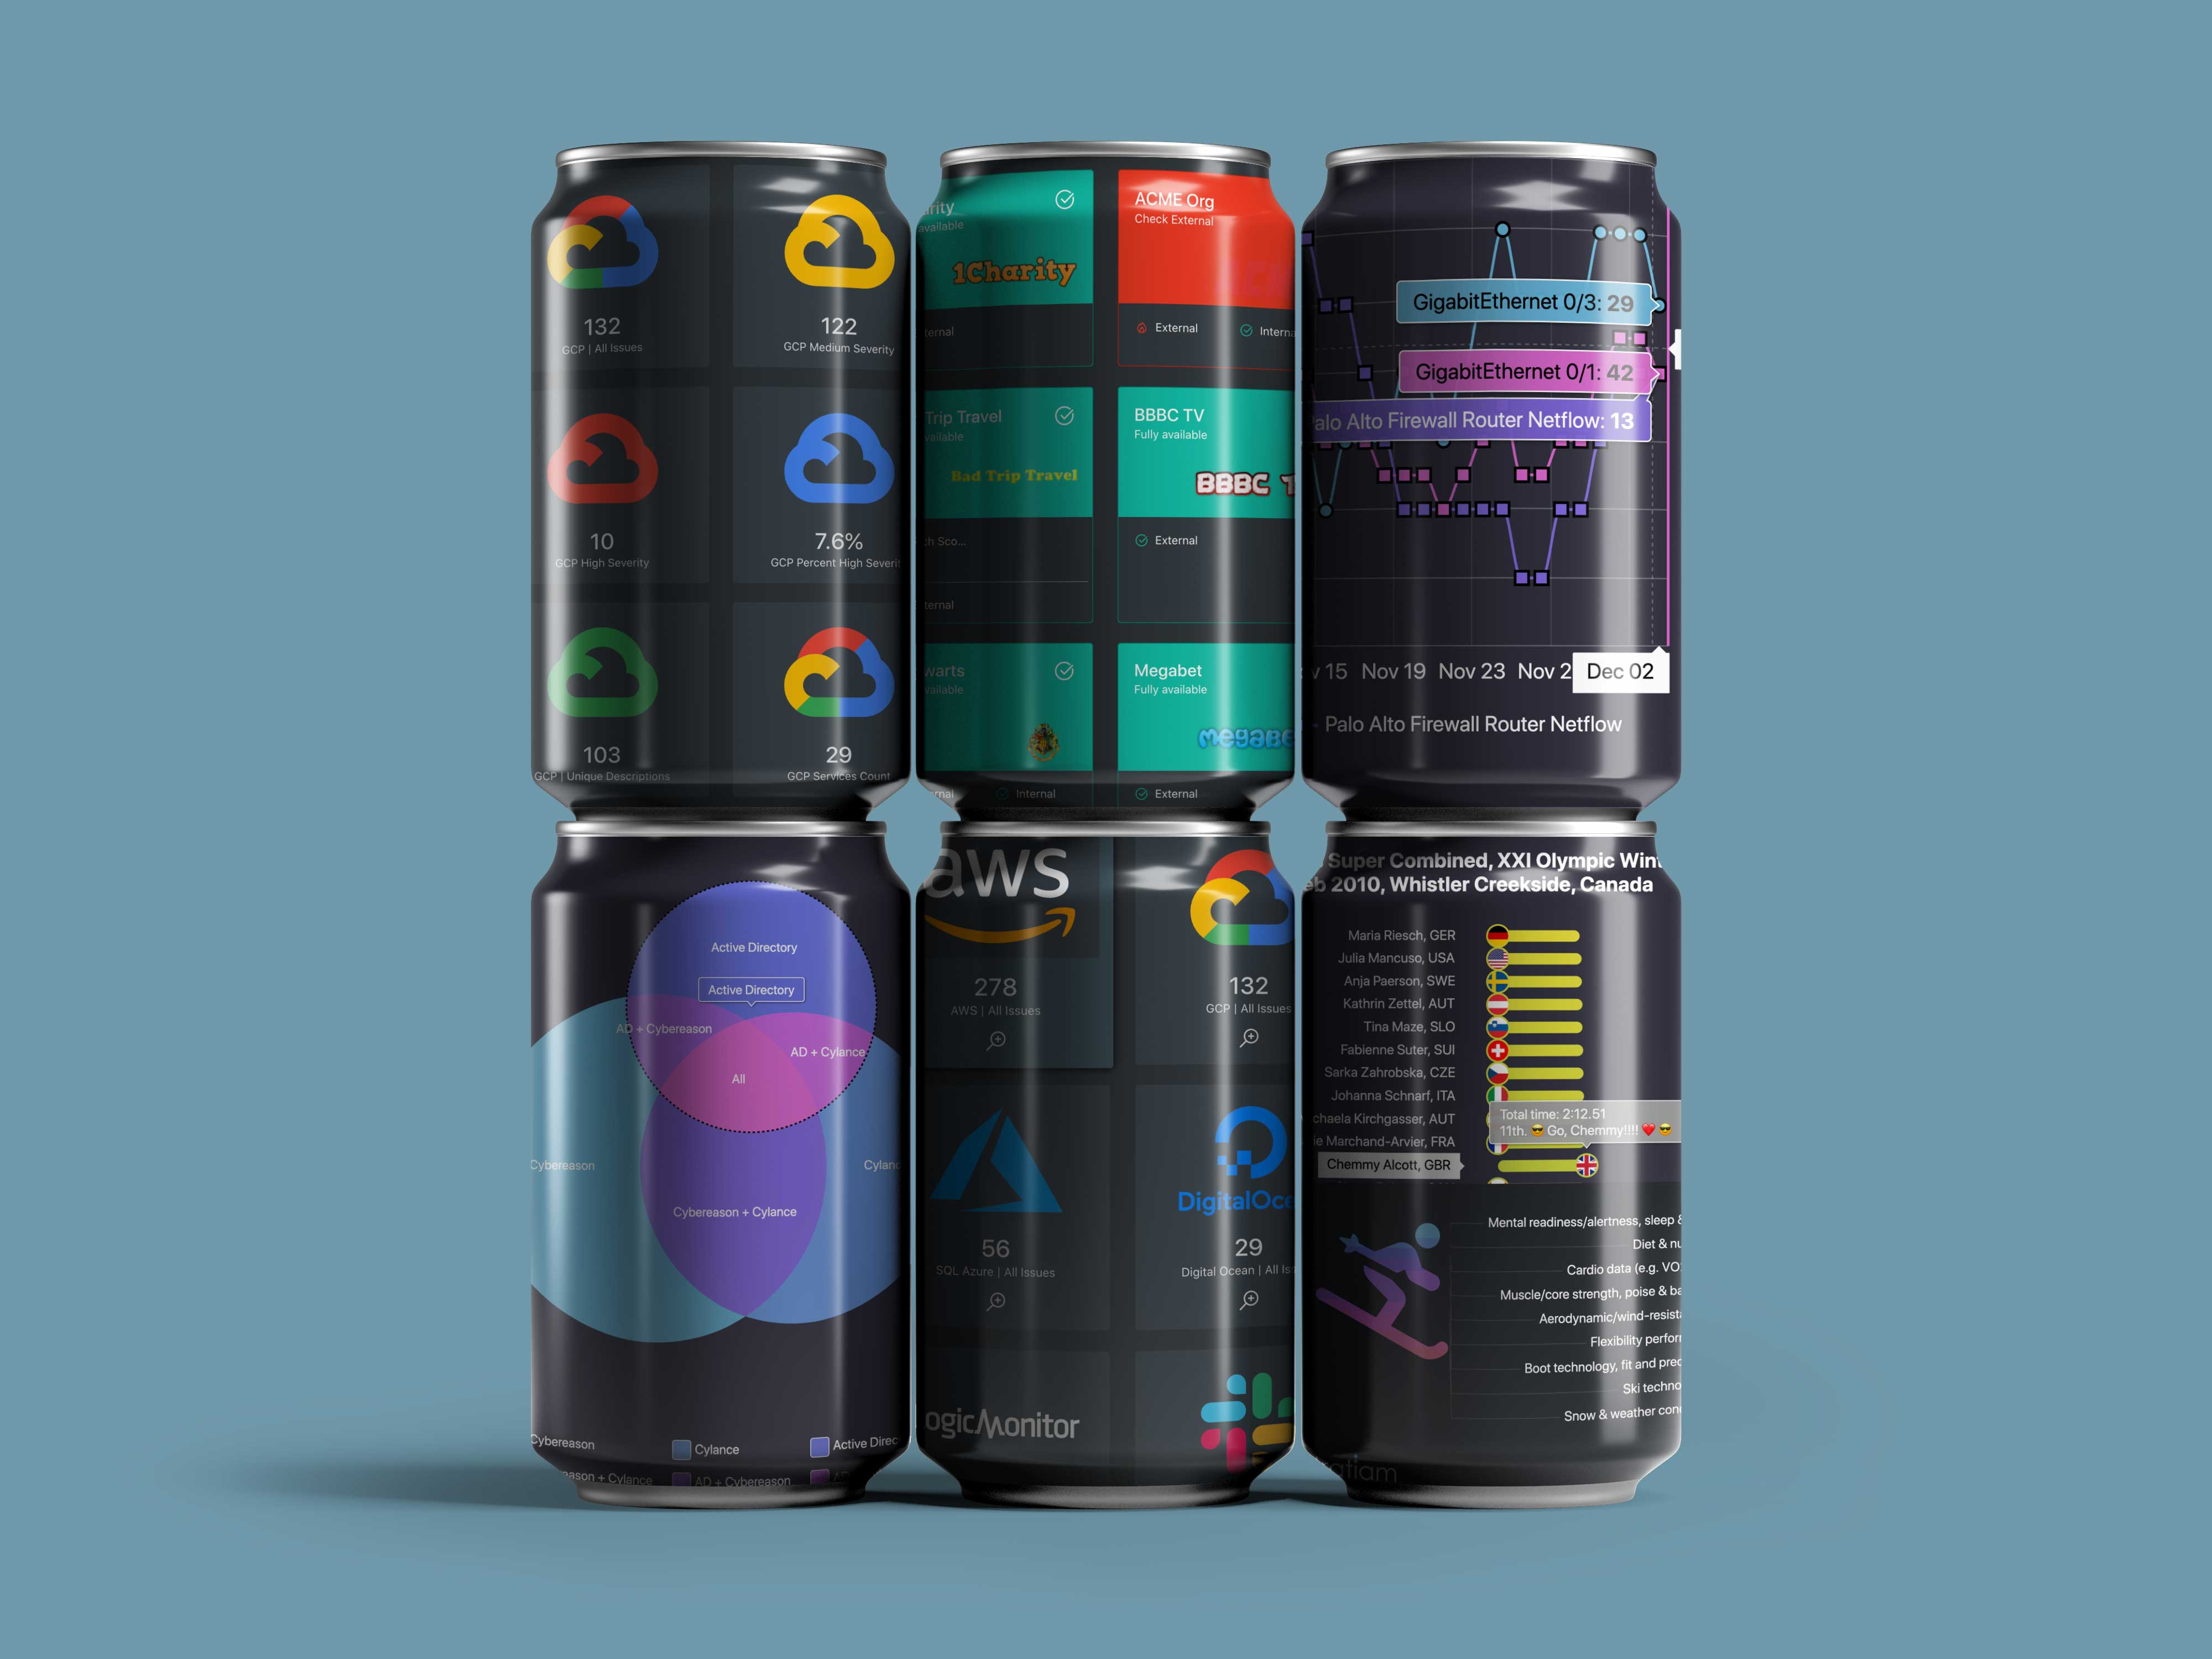 What's pre-canned analytics?